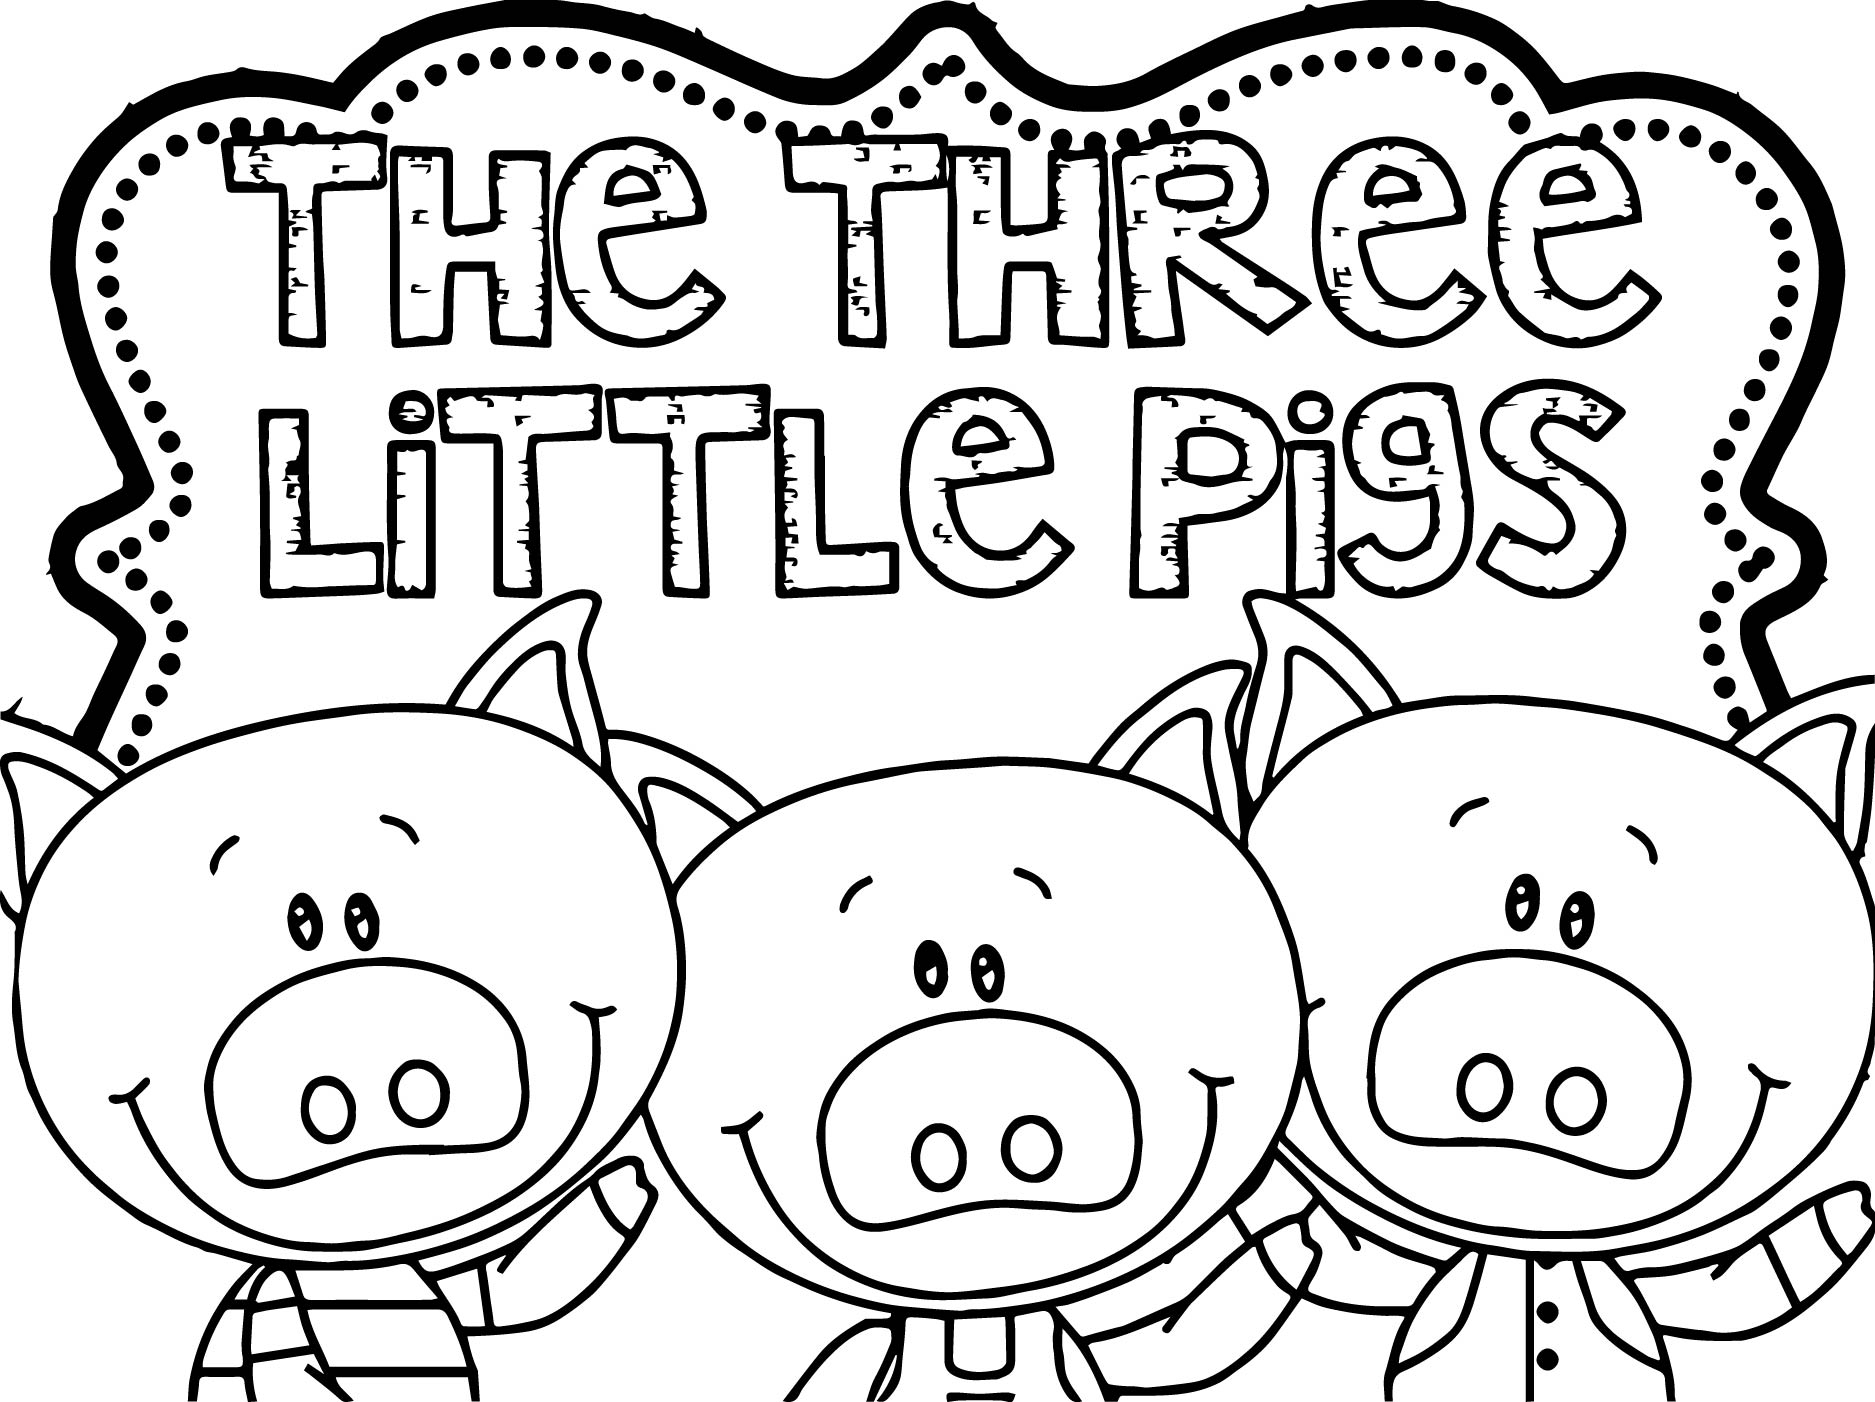 Wild Pig Coloring Pages at GetDrawings.com | Free for personal use ...